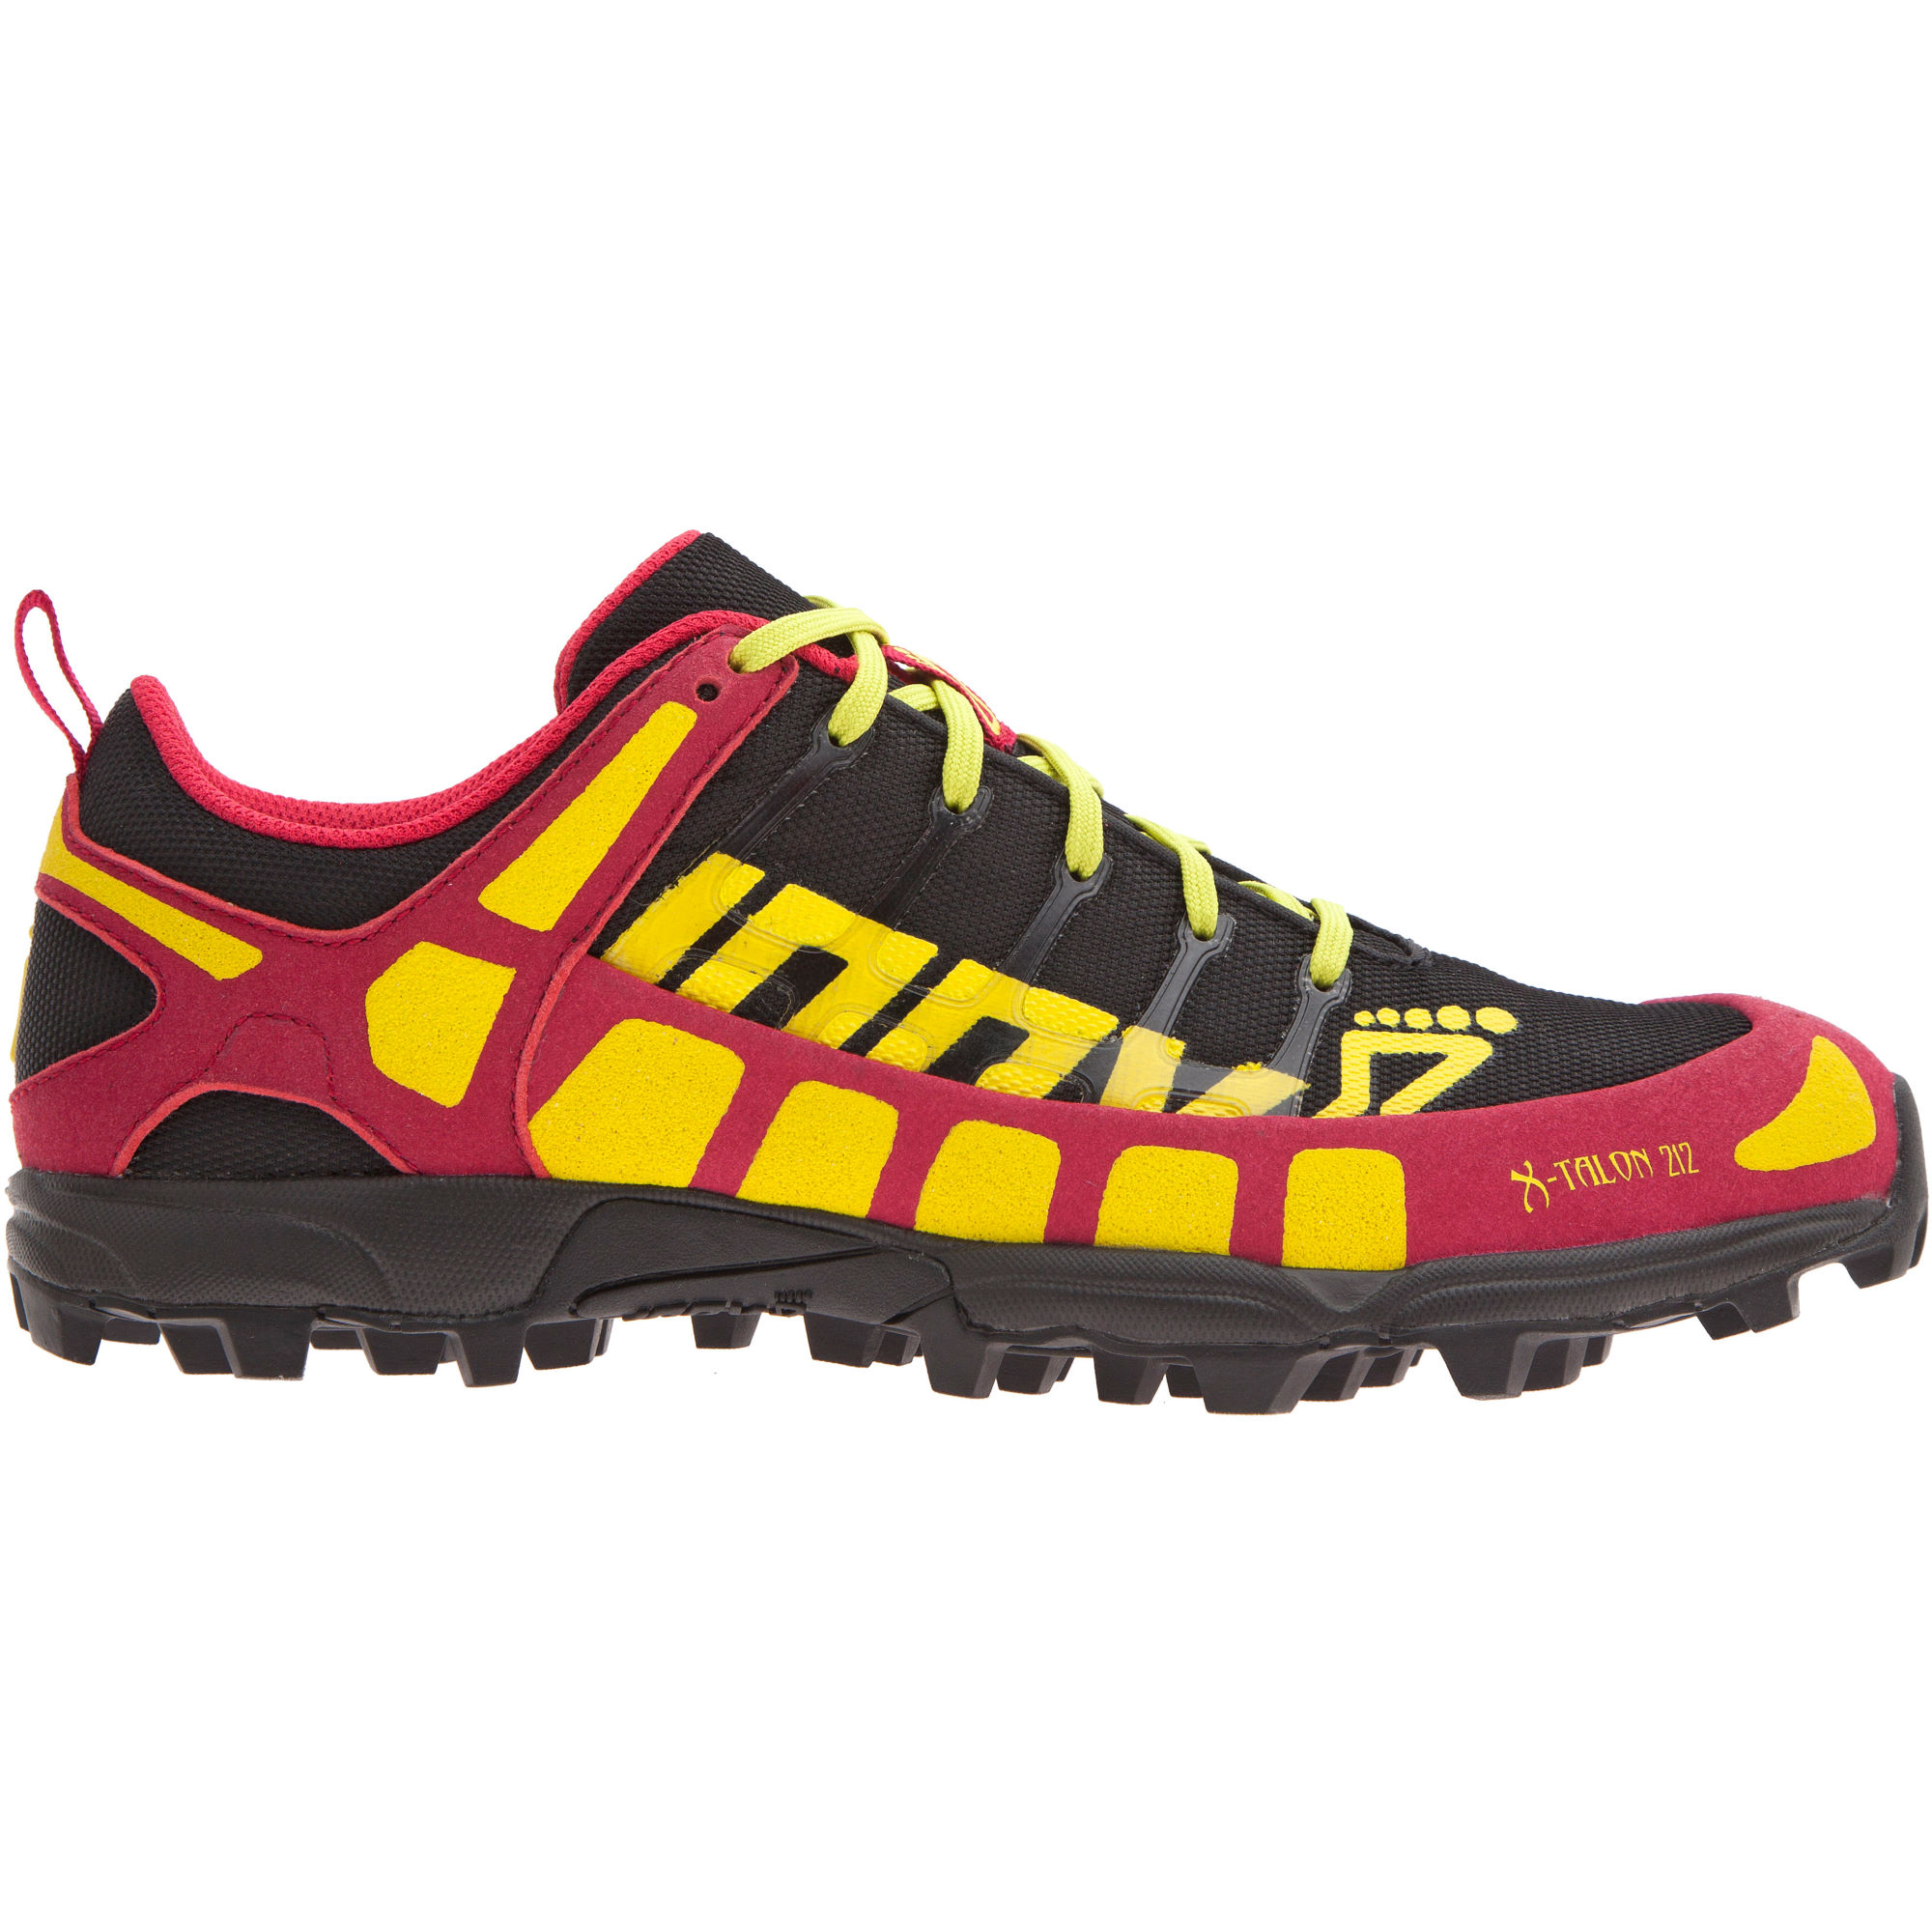 Inov X Talon  Trail Running Shoes Aw